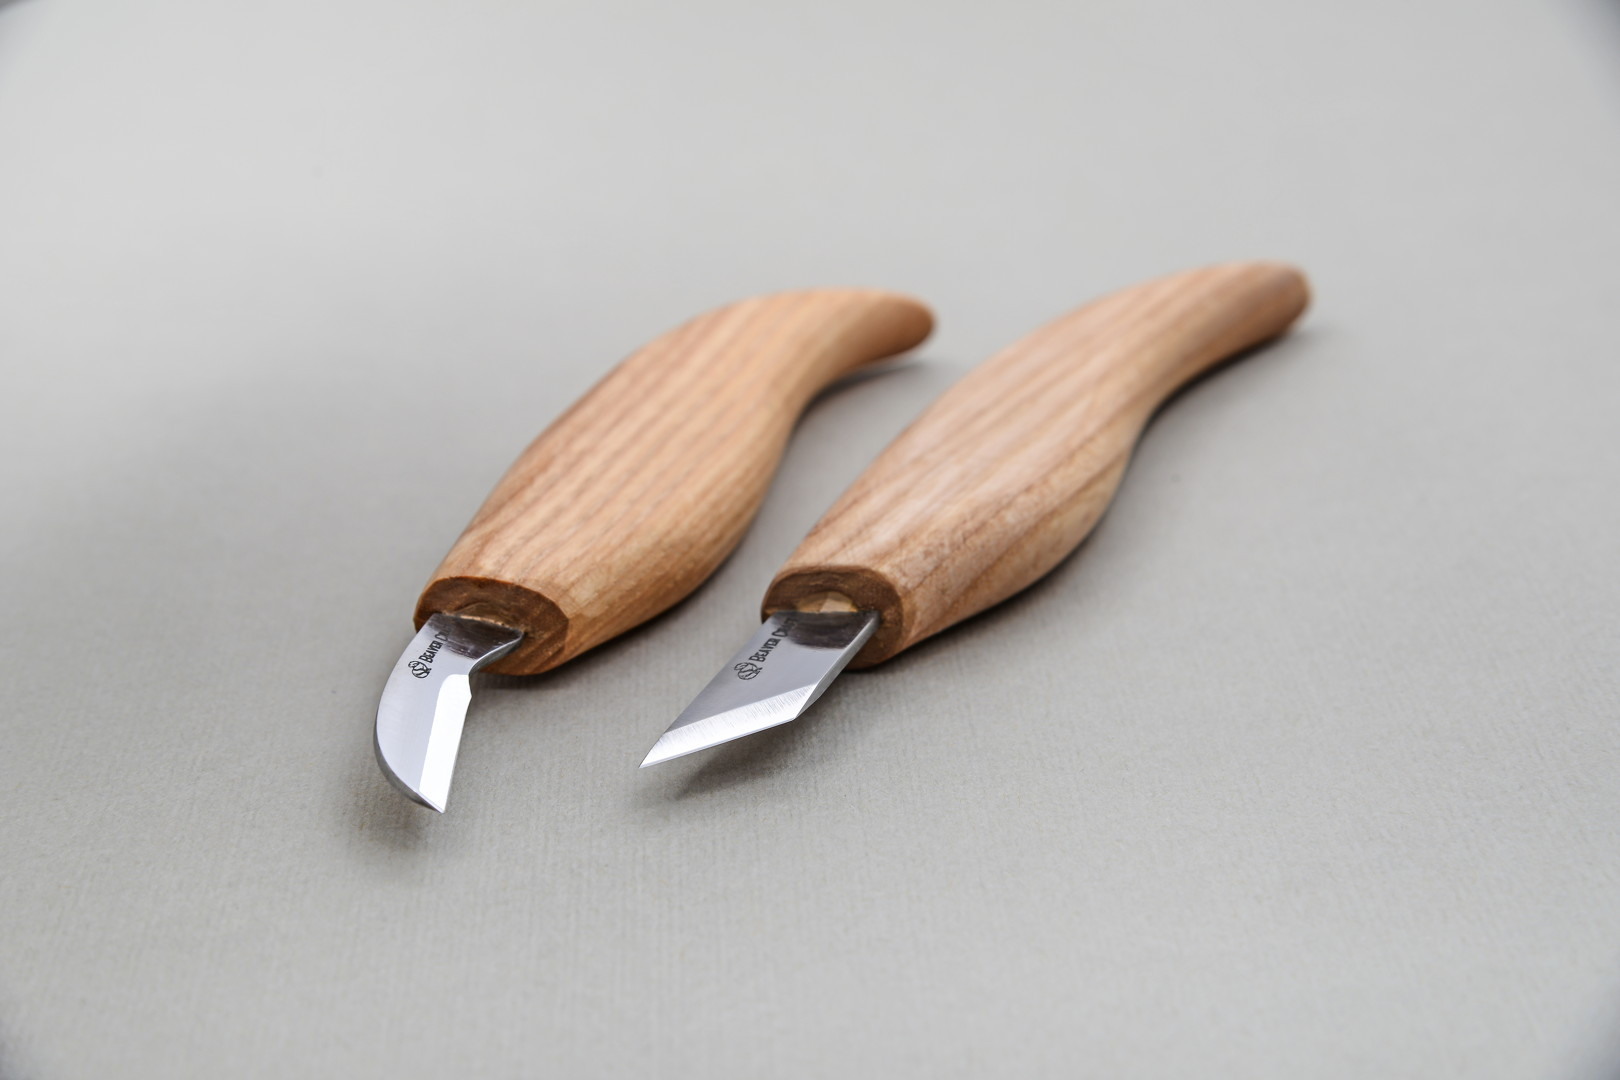 S — chip carving knife set beavercraft инструмент